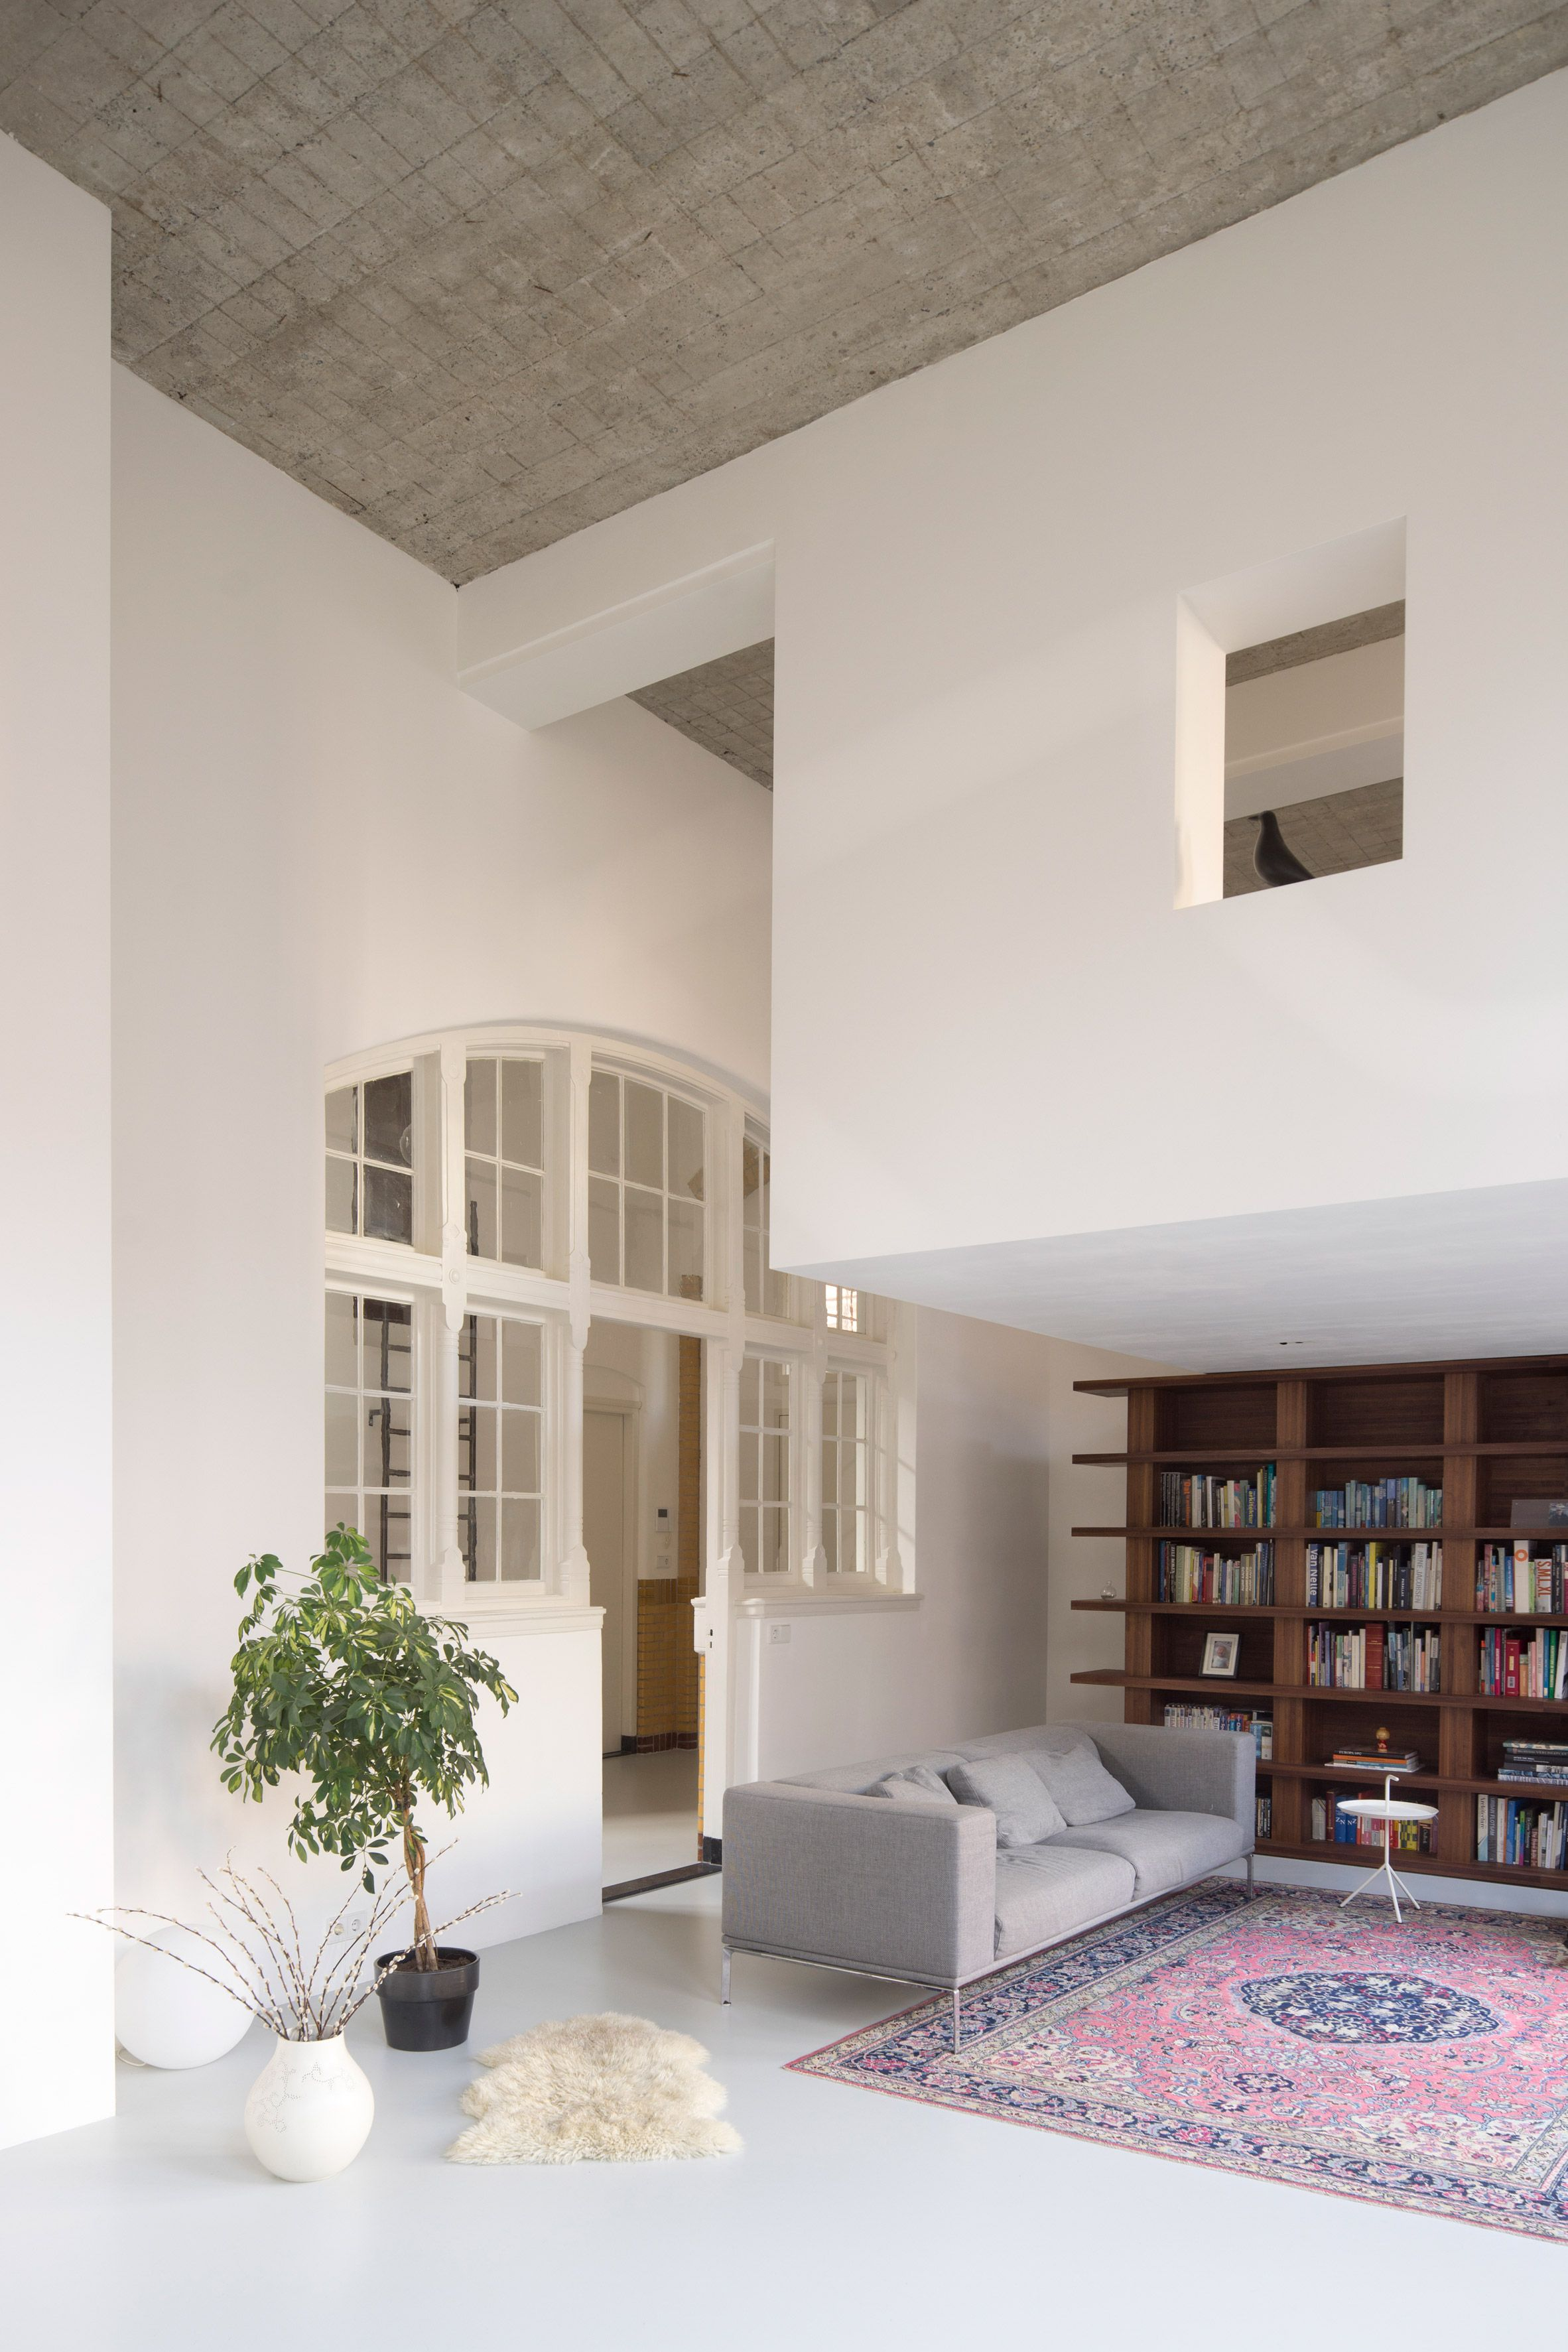 Eklund terbeek transform 20th century schoolhouse into light filled loft apartment